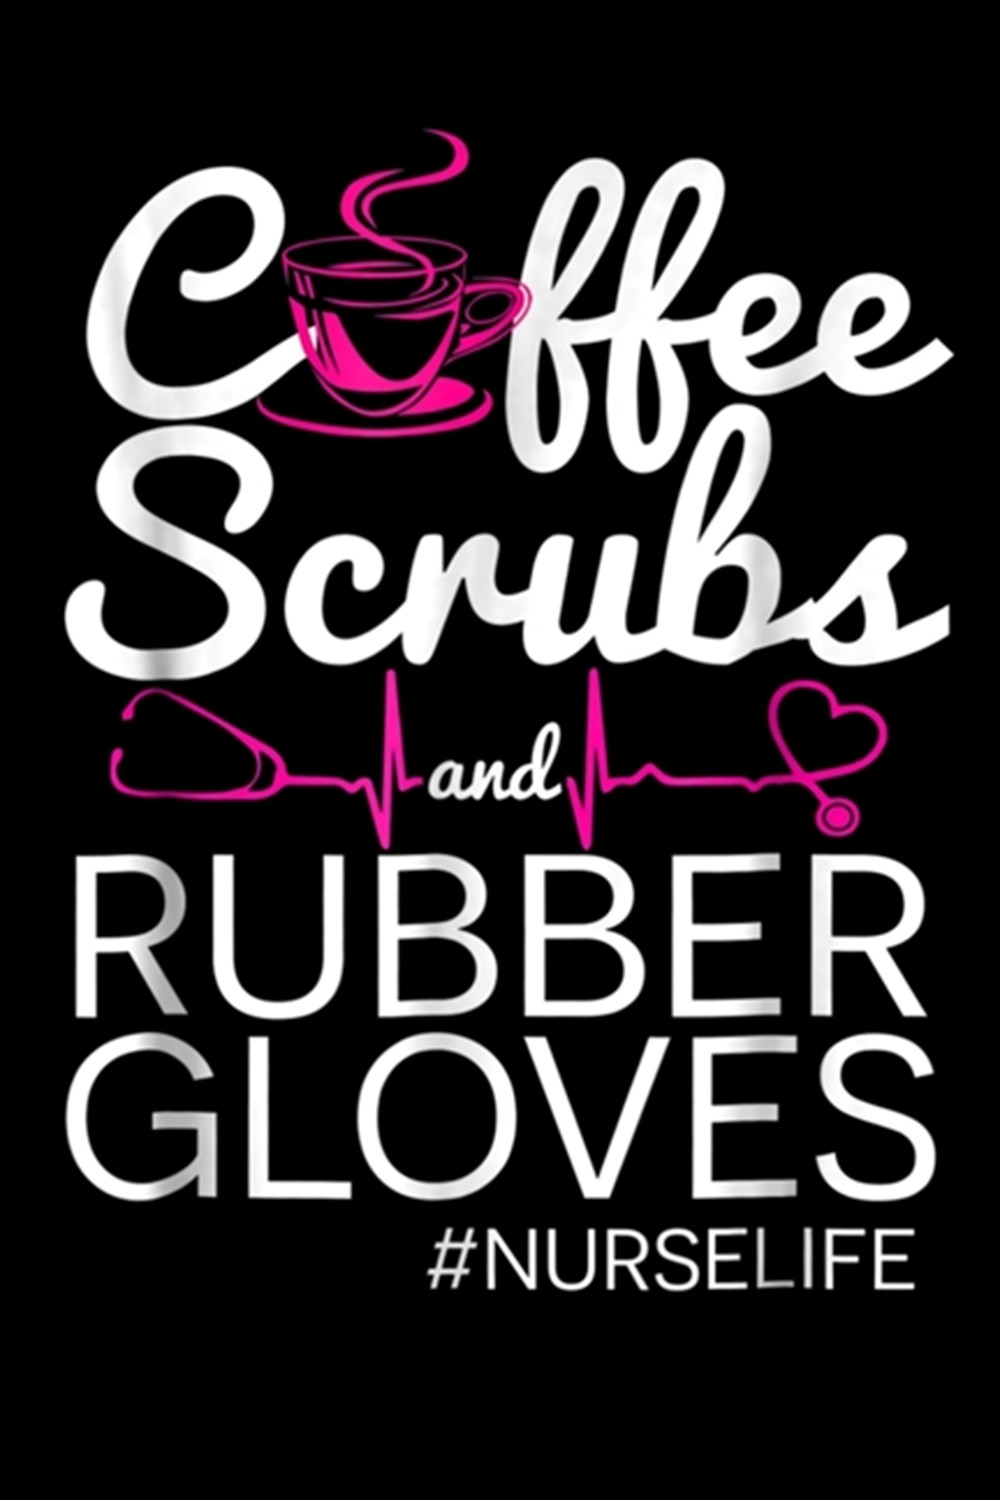 Coffee, Scrubs and Rubber Gloves. #Nurselife Certified Nursing Assistant Licensed Registered Nurse C